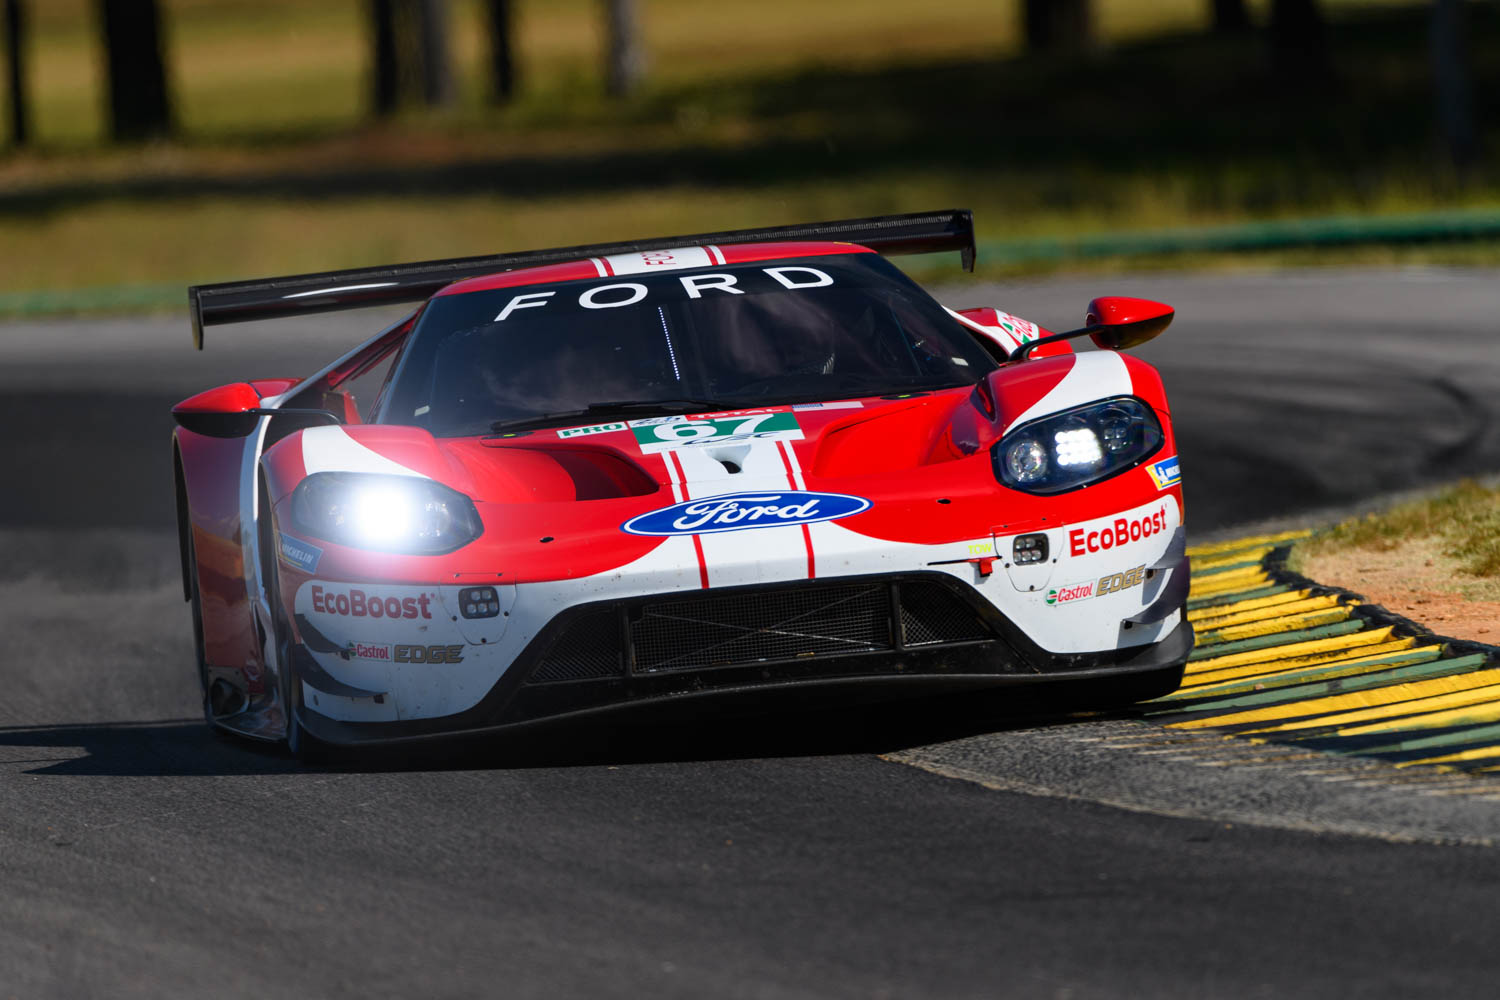 The GTLM suspension has to be stiff enough to keep the car flat during braking and cornering but compliant enough to drive on the curbs. The GTLM does both expertly, thanks in part to dampers with multiple adjustments and 250,000 potential settings.